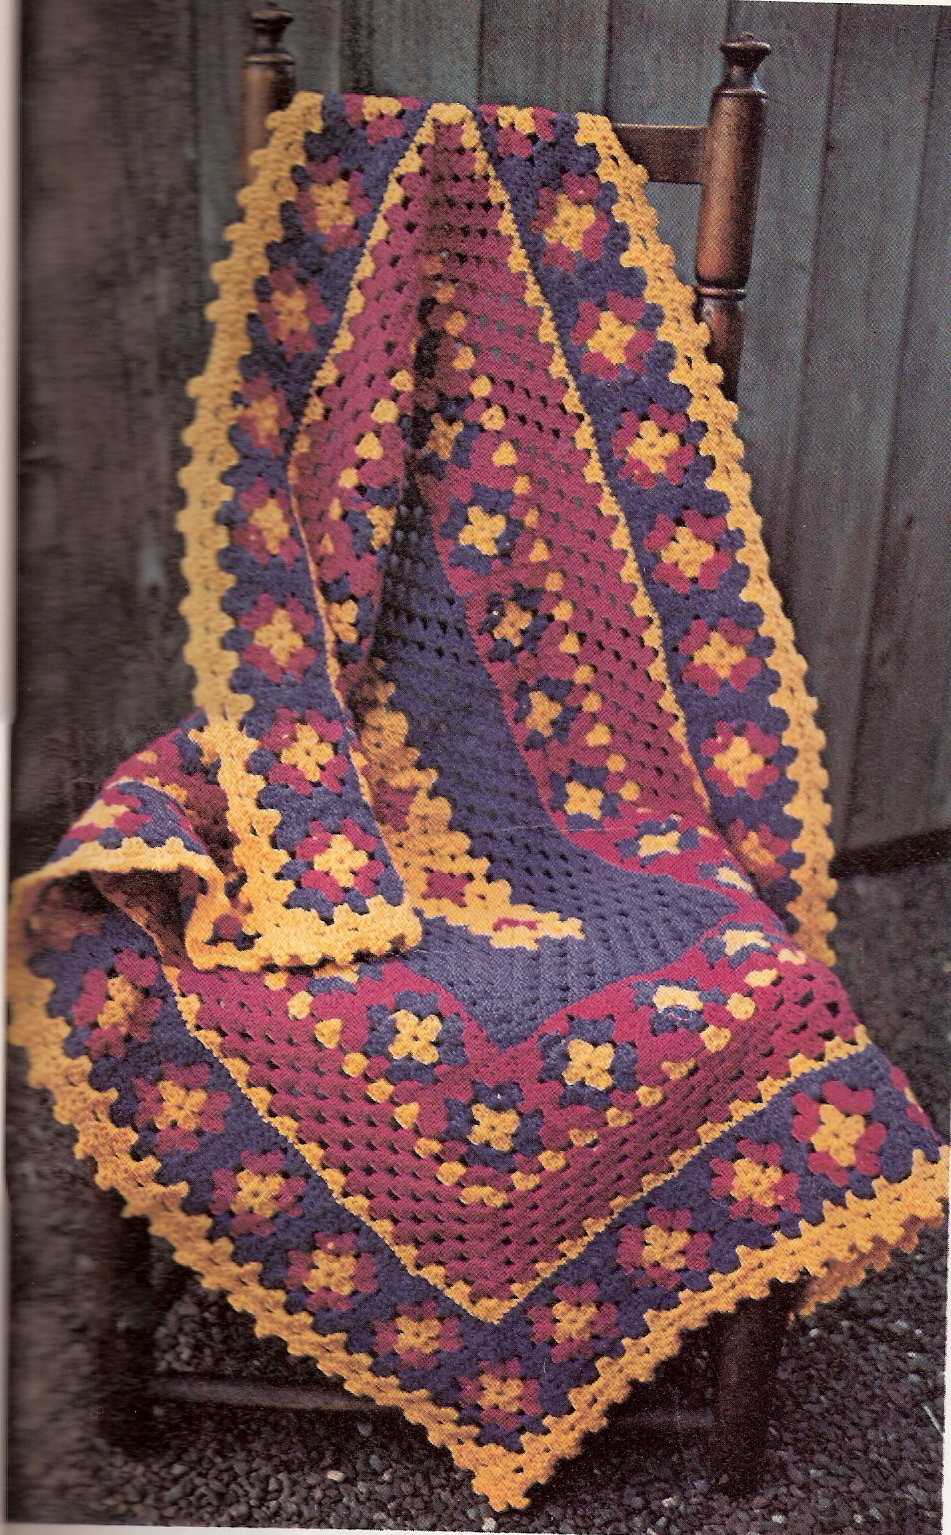 Crochet Afghan Pattern : Pics Photos - Home Crochet Afghan Throw Patterns Granny Square Scrap